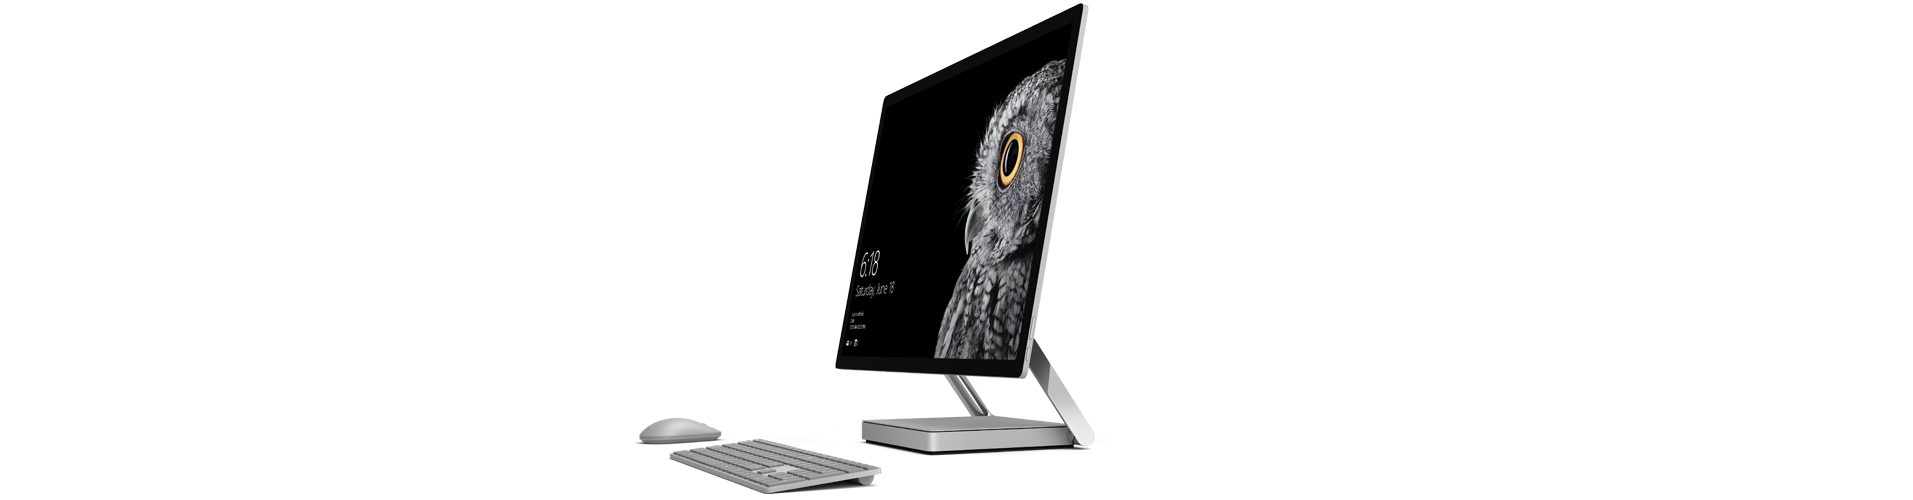 Surface Studio in aufrechter Position mit Surface-Maus und -Tastatur.